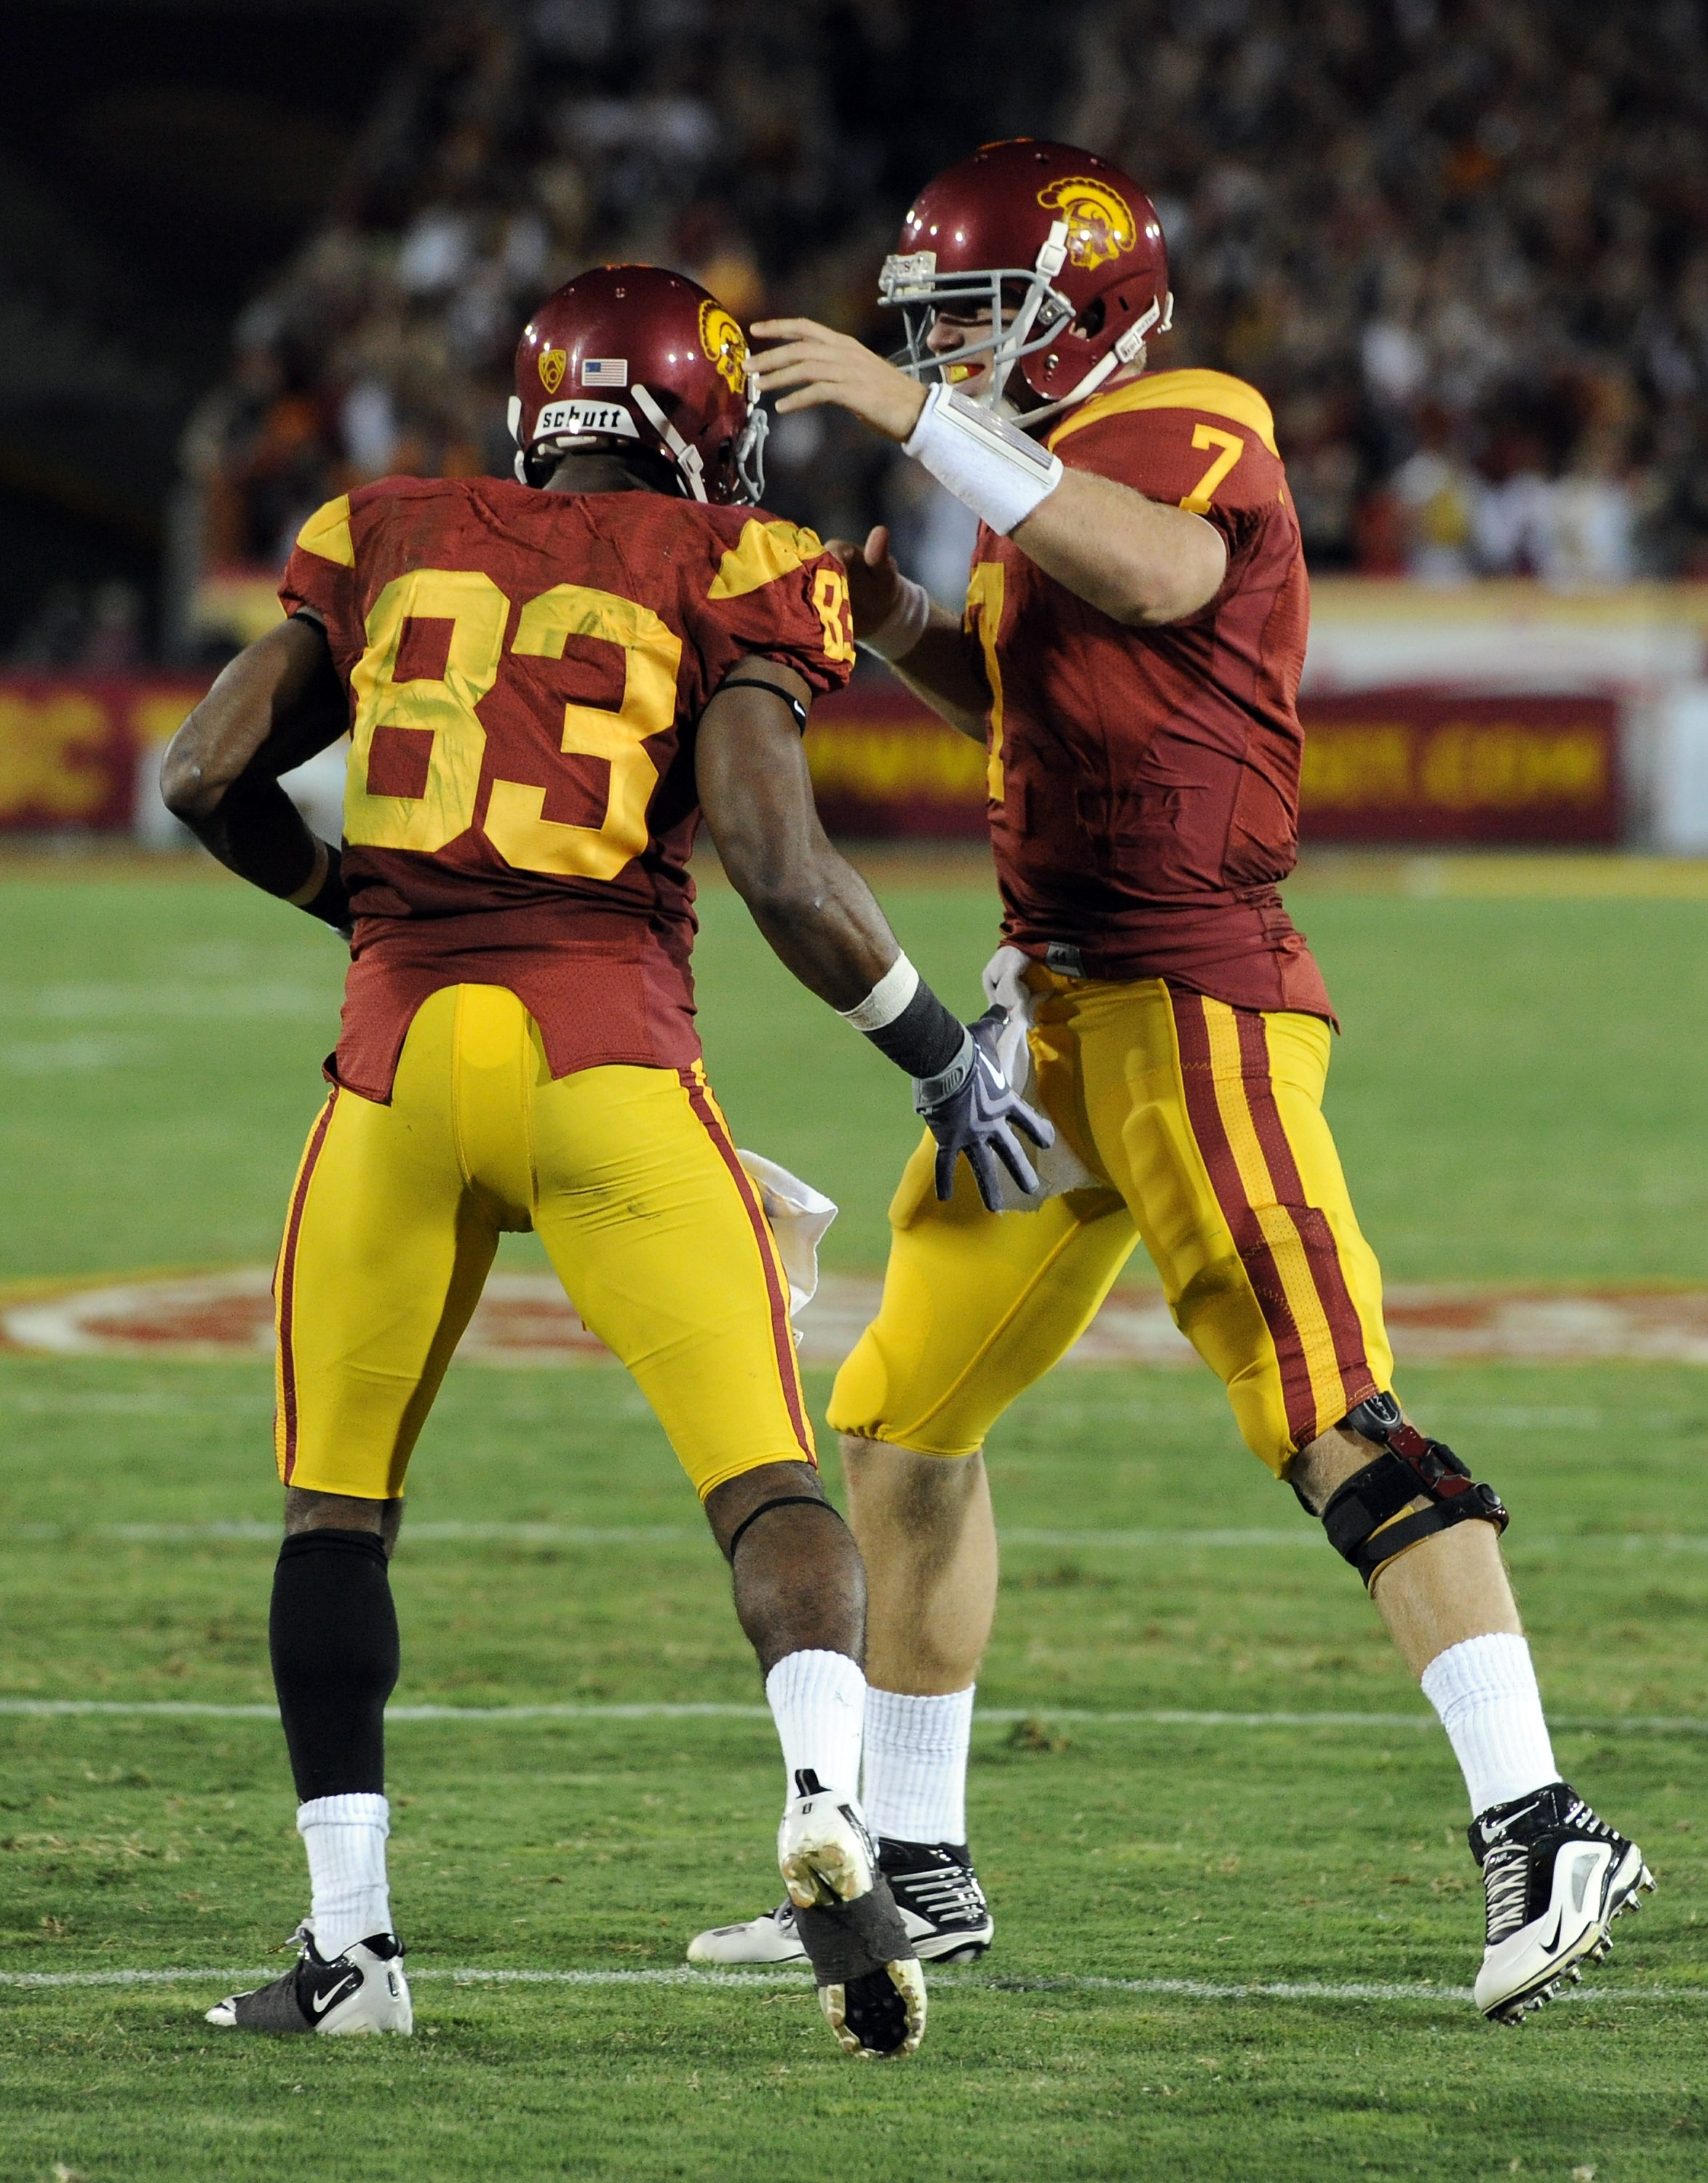 LOS ANGELES, CA - OCTOBER 30:  Matt Barkley #7 and Ronald Johnson #83 of USC Trojans celebrate a touchdown to trail 24-29 against the Oregon Ducks during the third quarter at Los Angeles Memorial Coliseum on October 30, 2010 in Los Angeles, California.  (